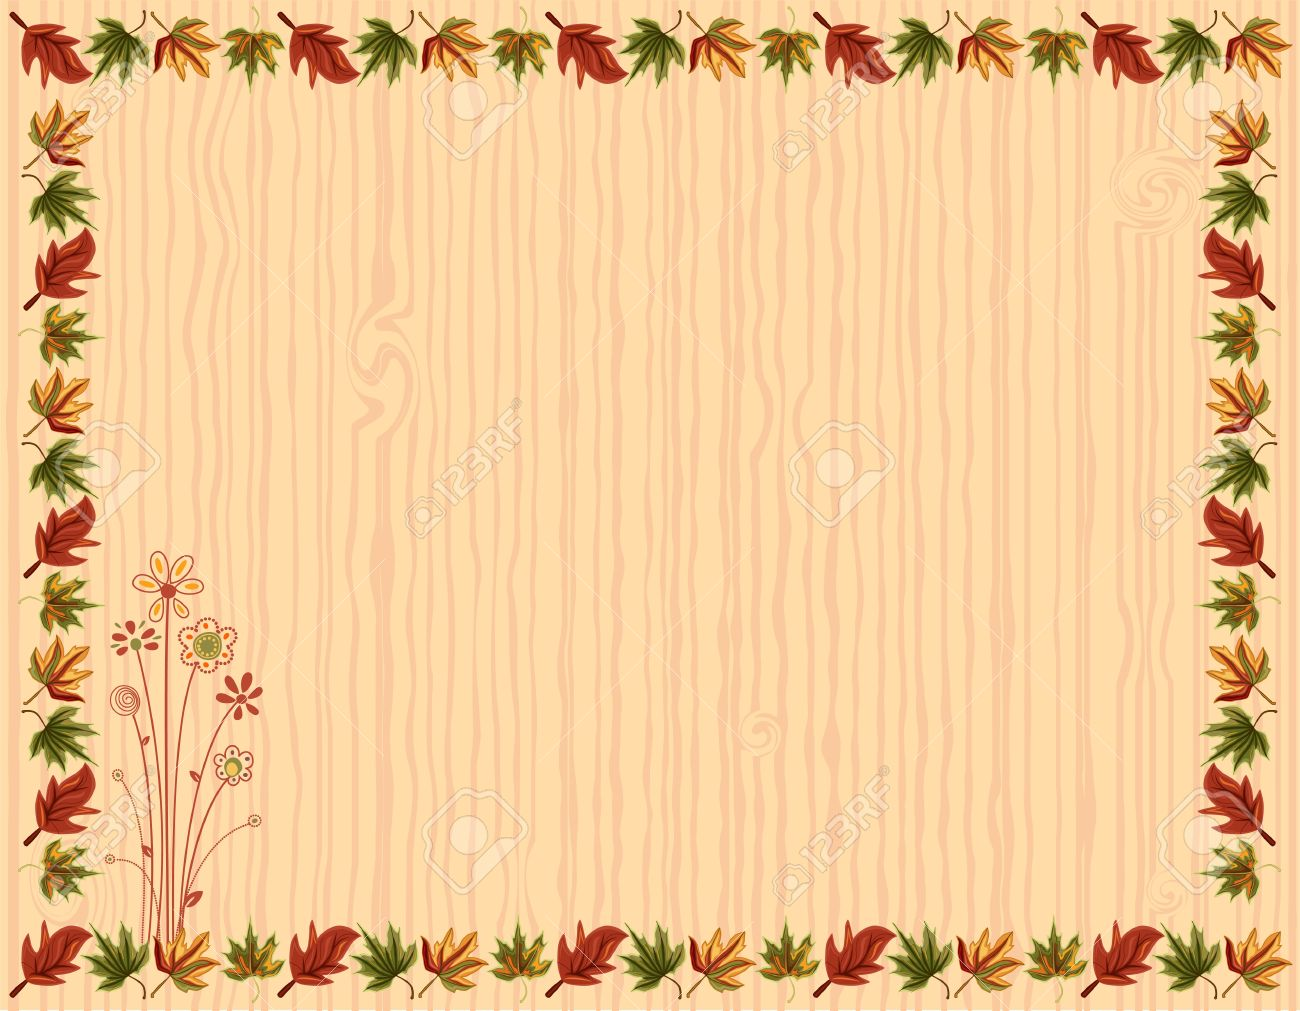 Autumn Greeting Card With Leaves Border And Floral Design Royalty